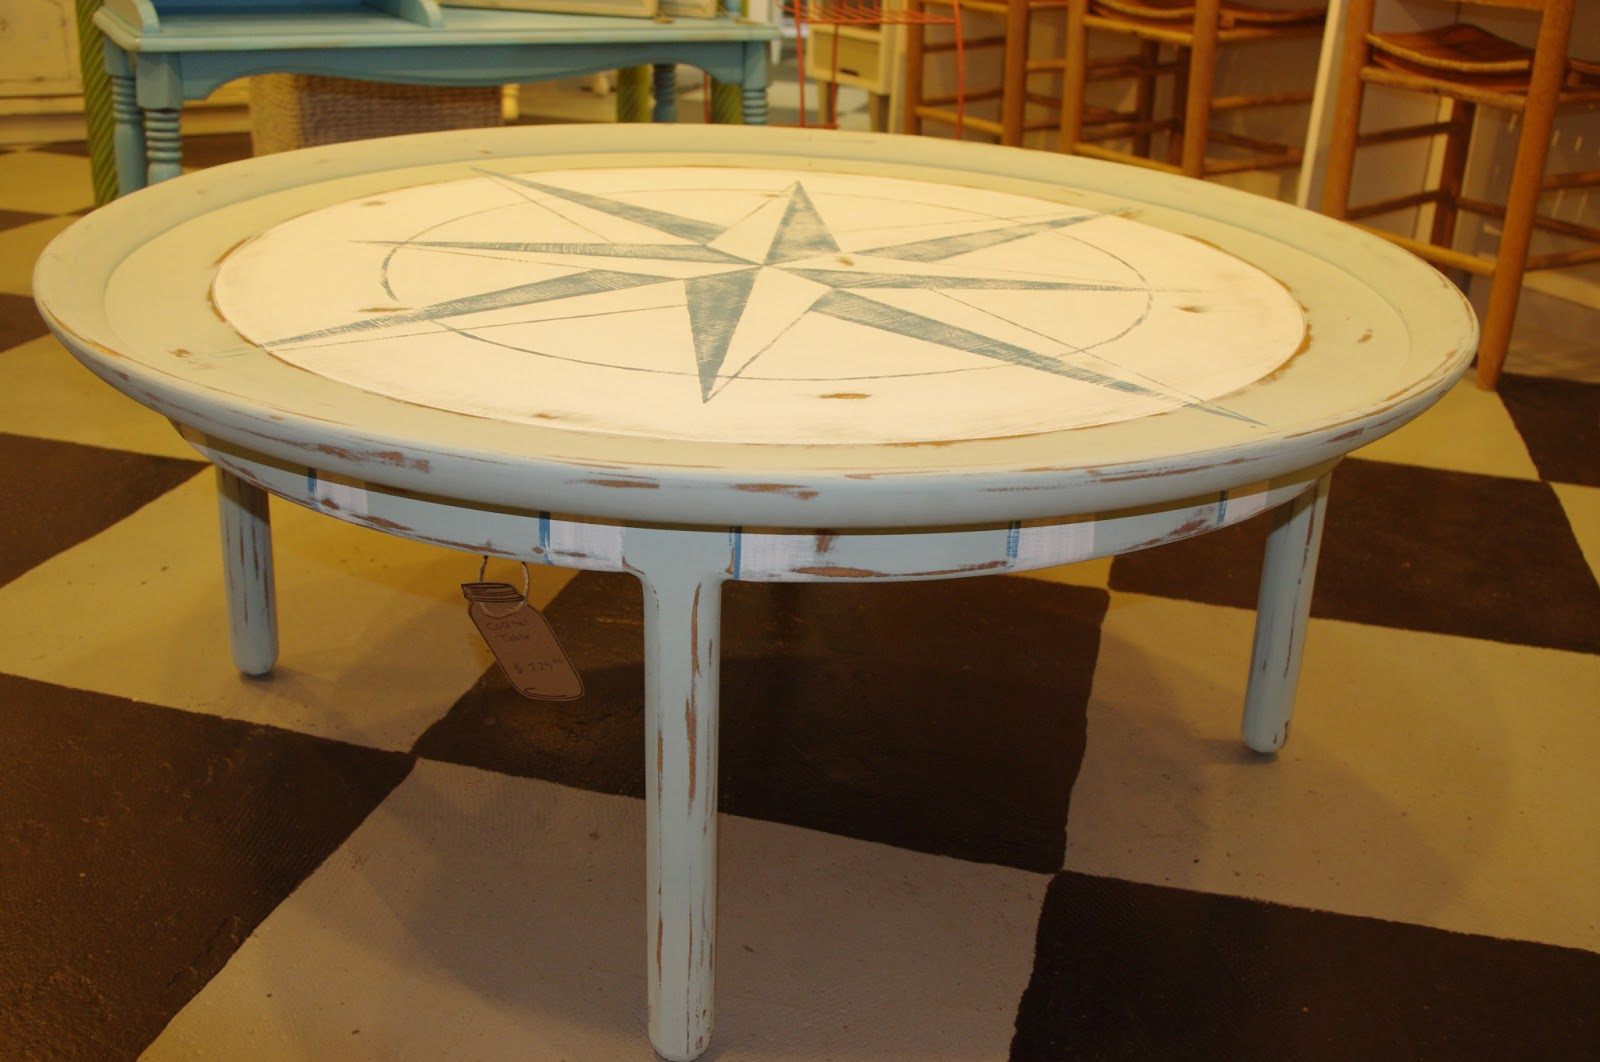 Coastal Chic Boutique: Round Nautical Coffee Table - SOLD